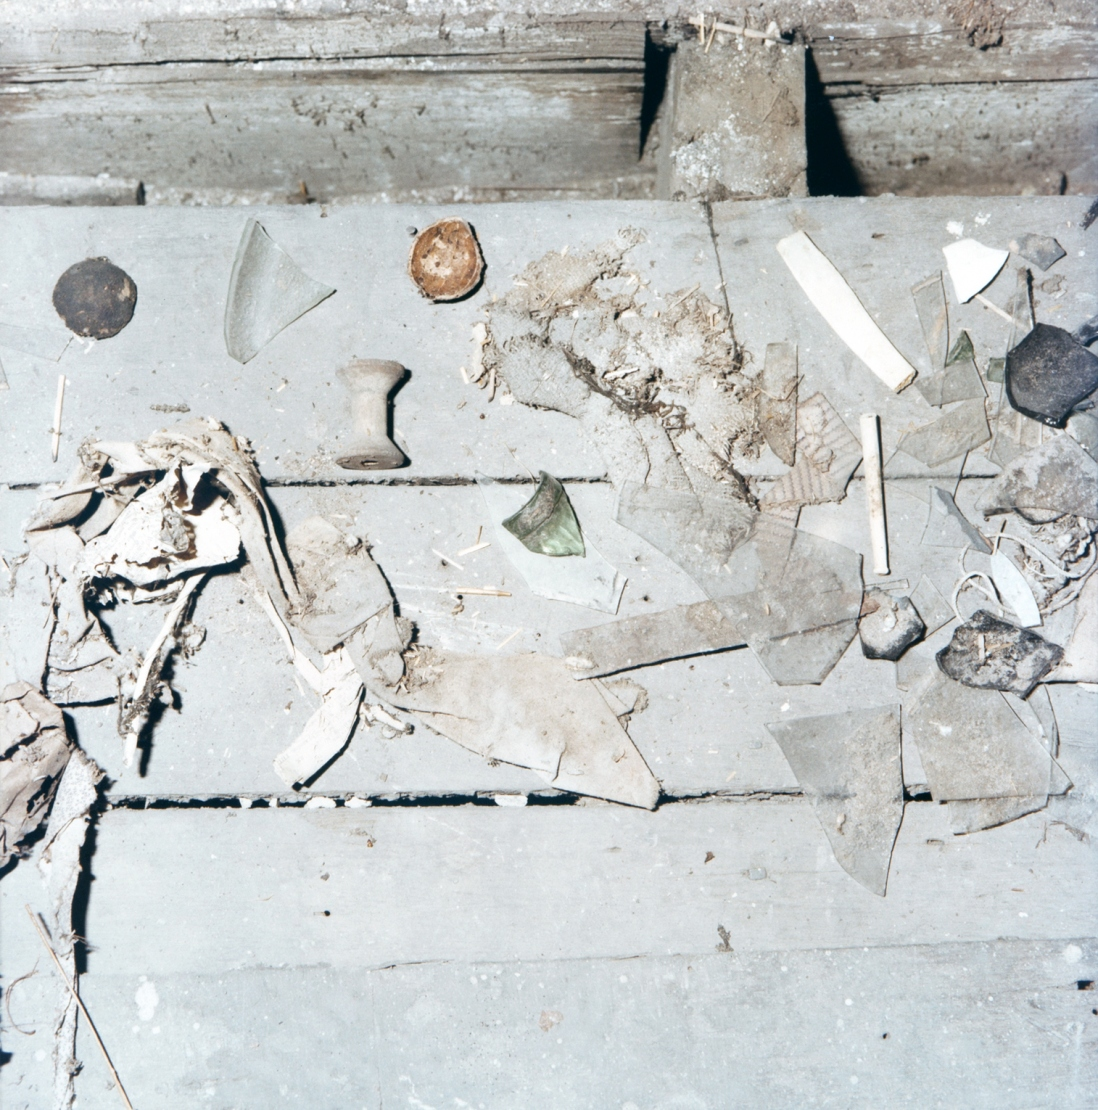 Collection of items on floorboards.